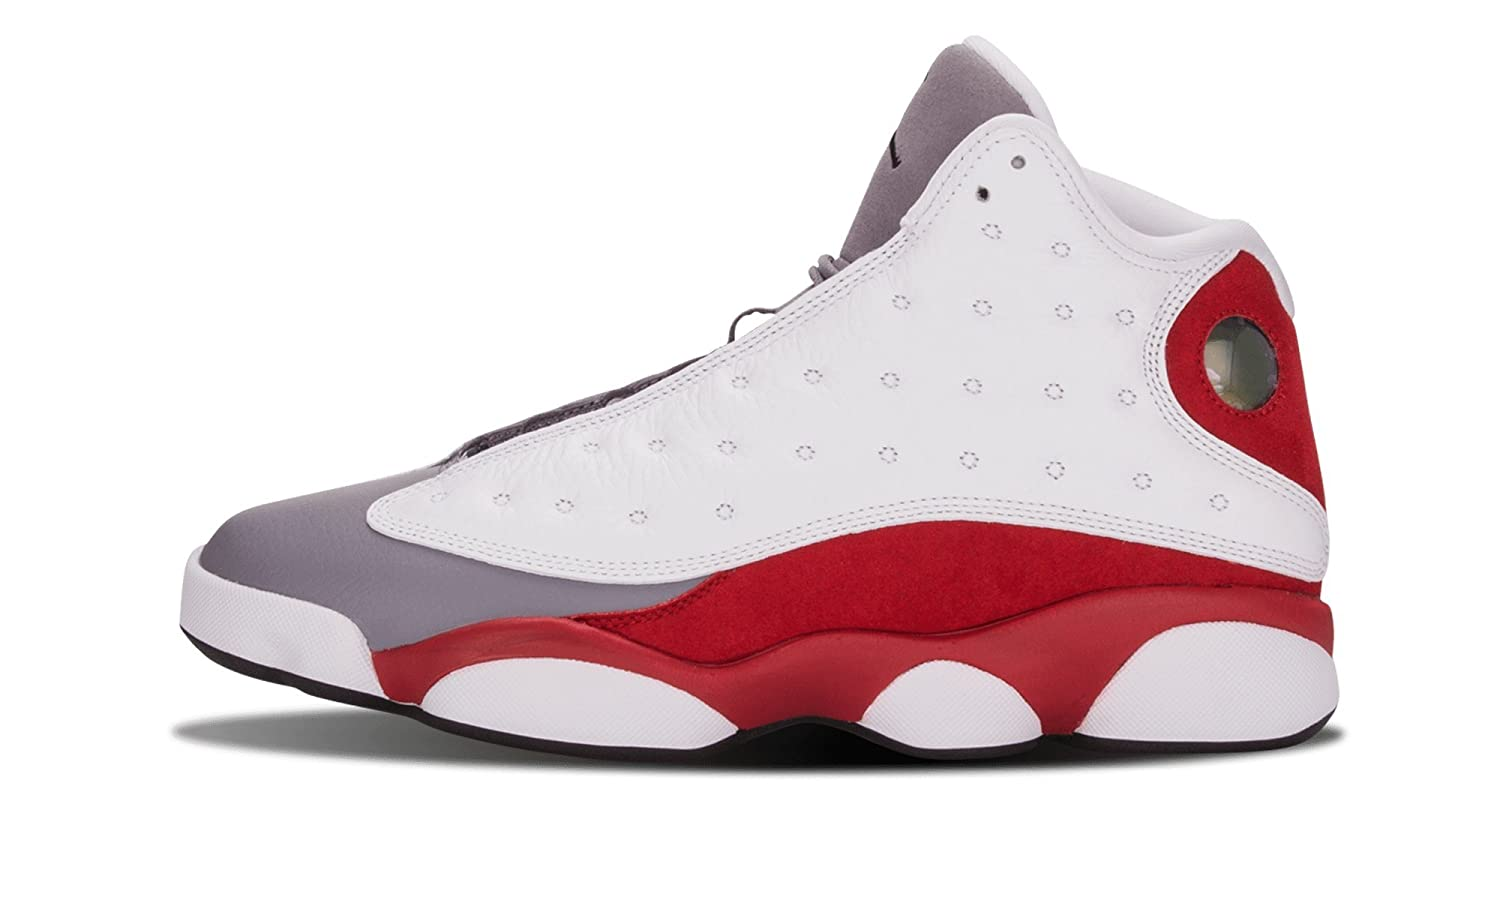 Nike Mens Air Jordan 13 Retro Grey Toe White Black Cement Grey-True Red Leather Basketball Shoes Size